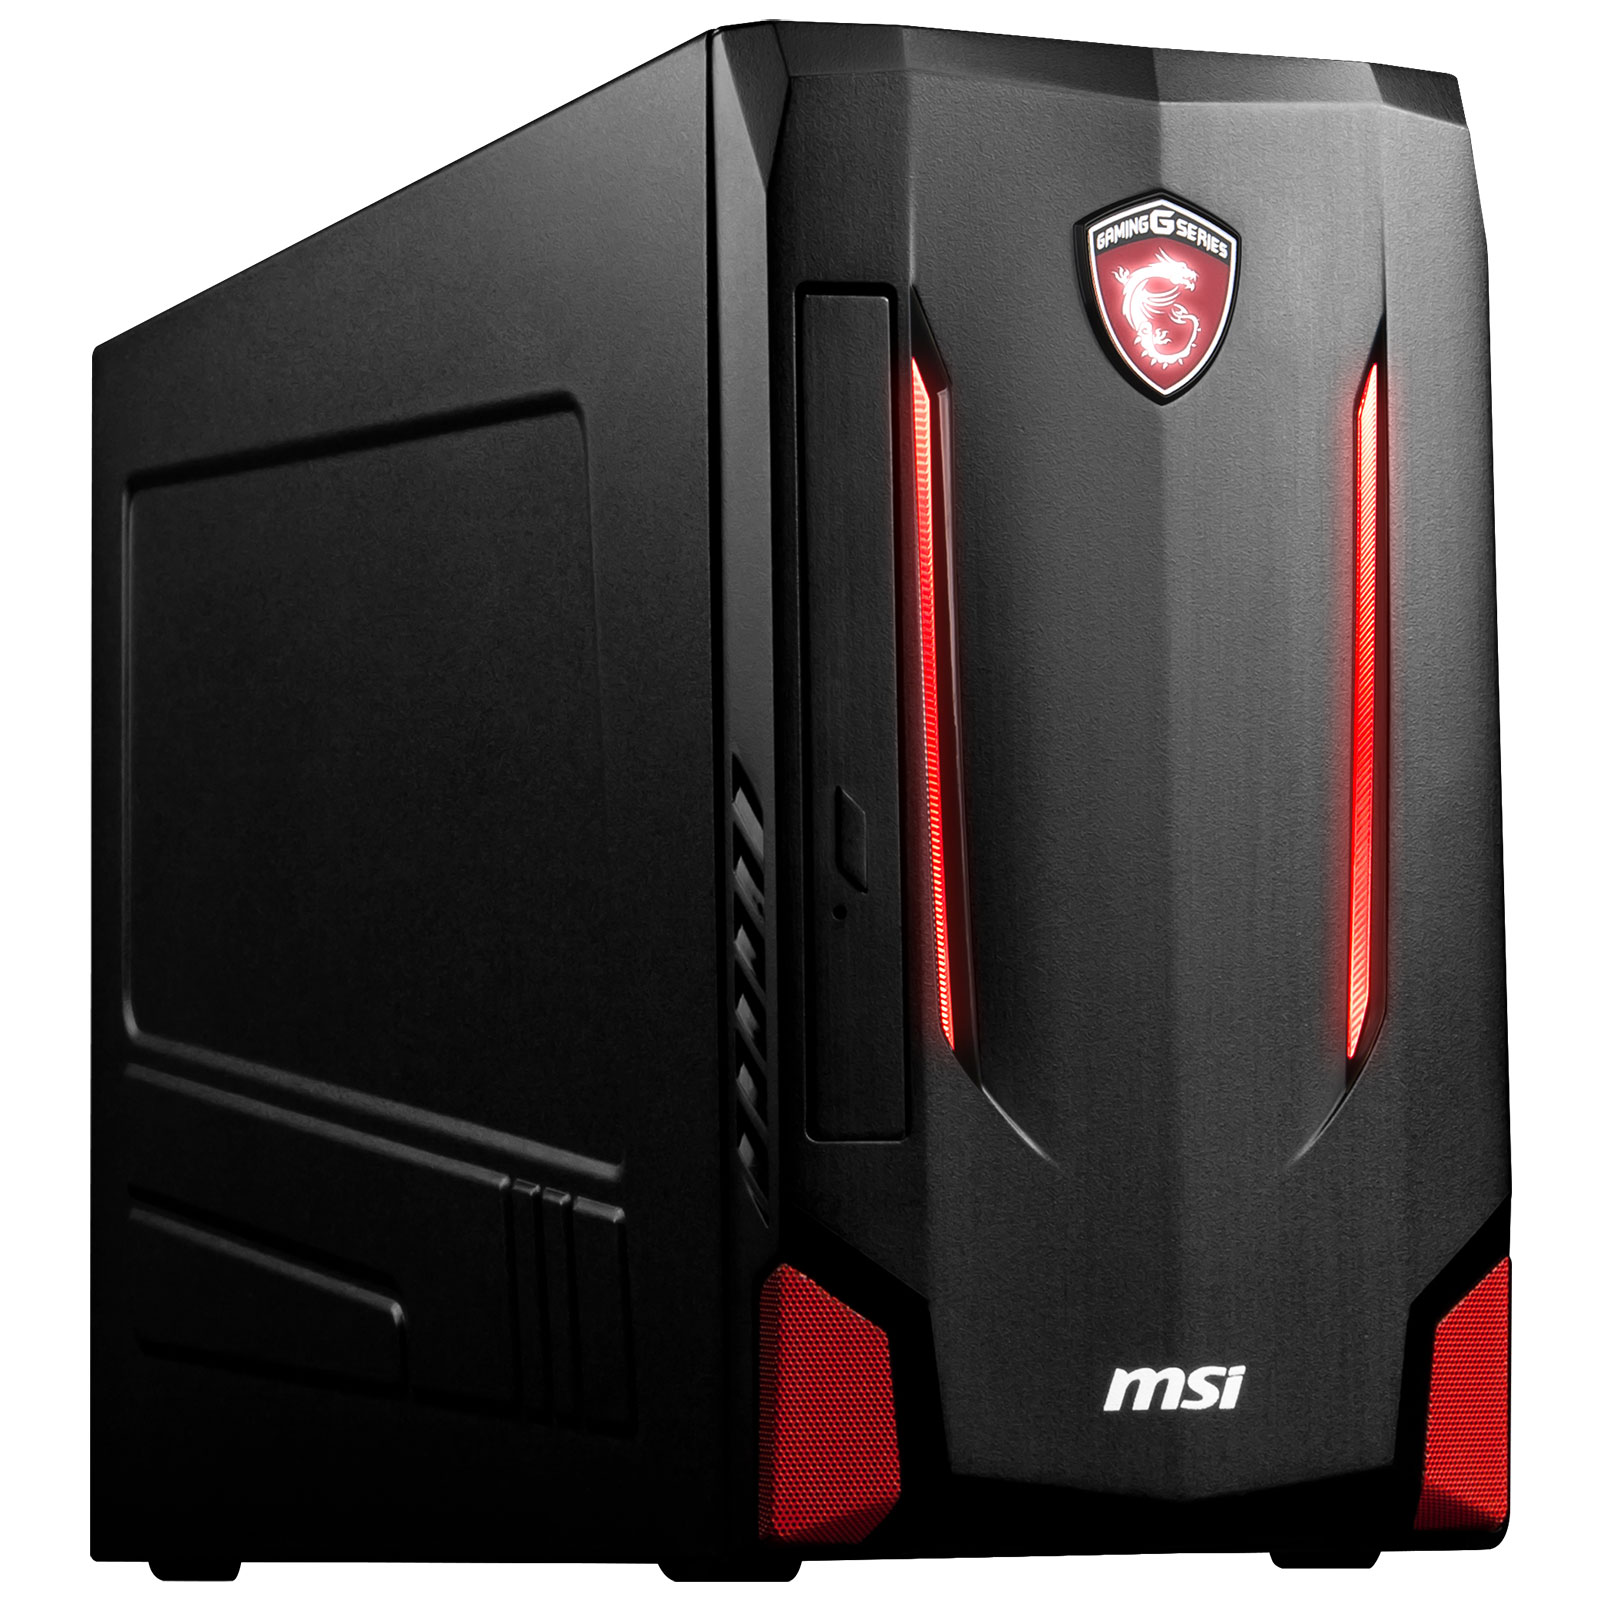 msi nightblade mi2c 044fr pc de bureau msi sur. Black Bedroom Furniture Sets. Home Design Ideas